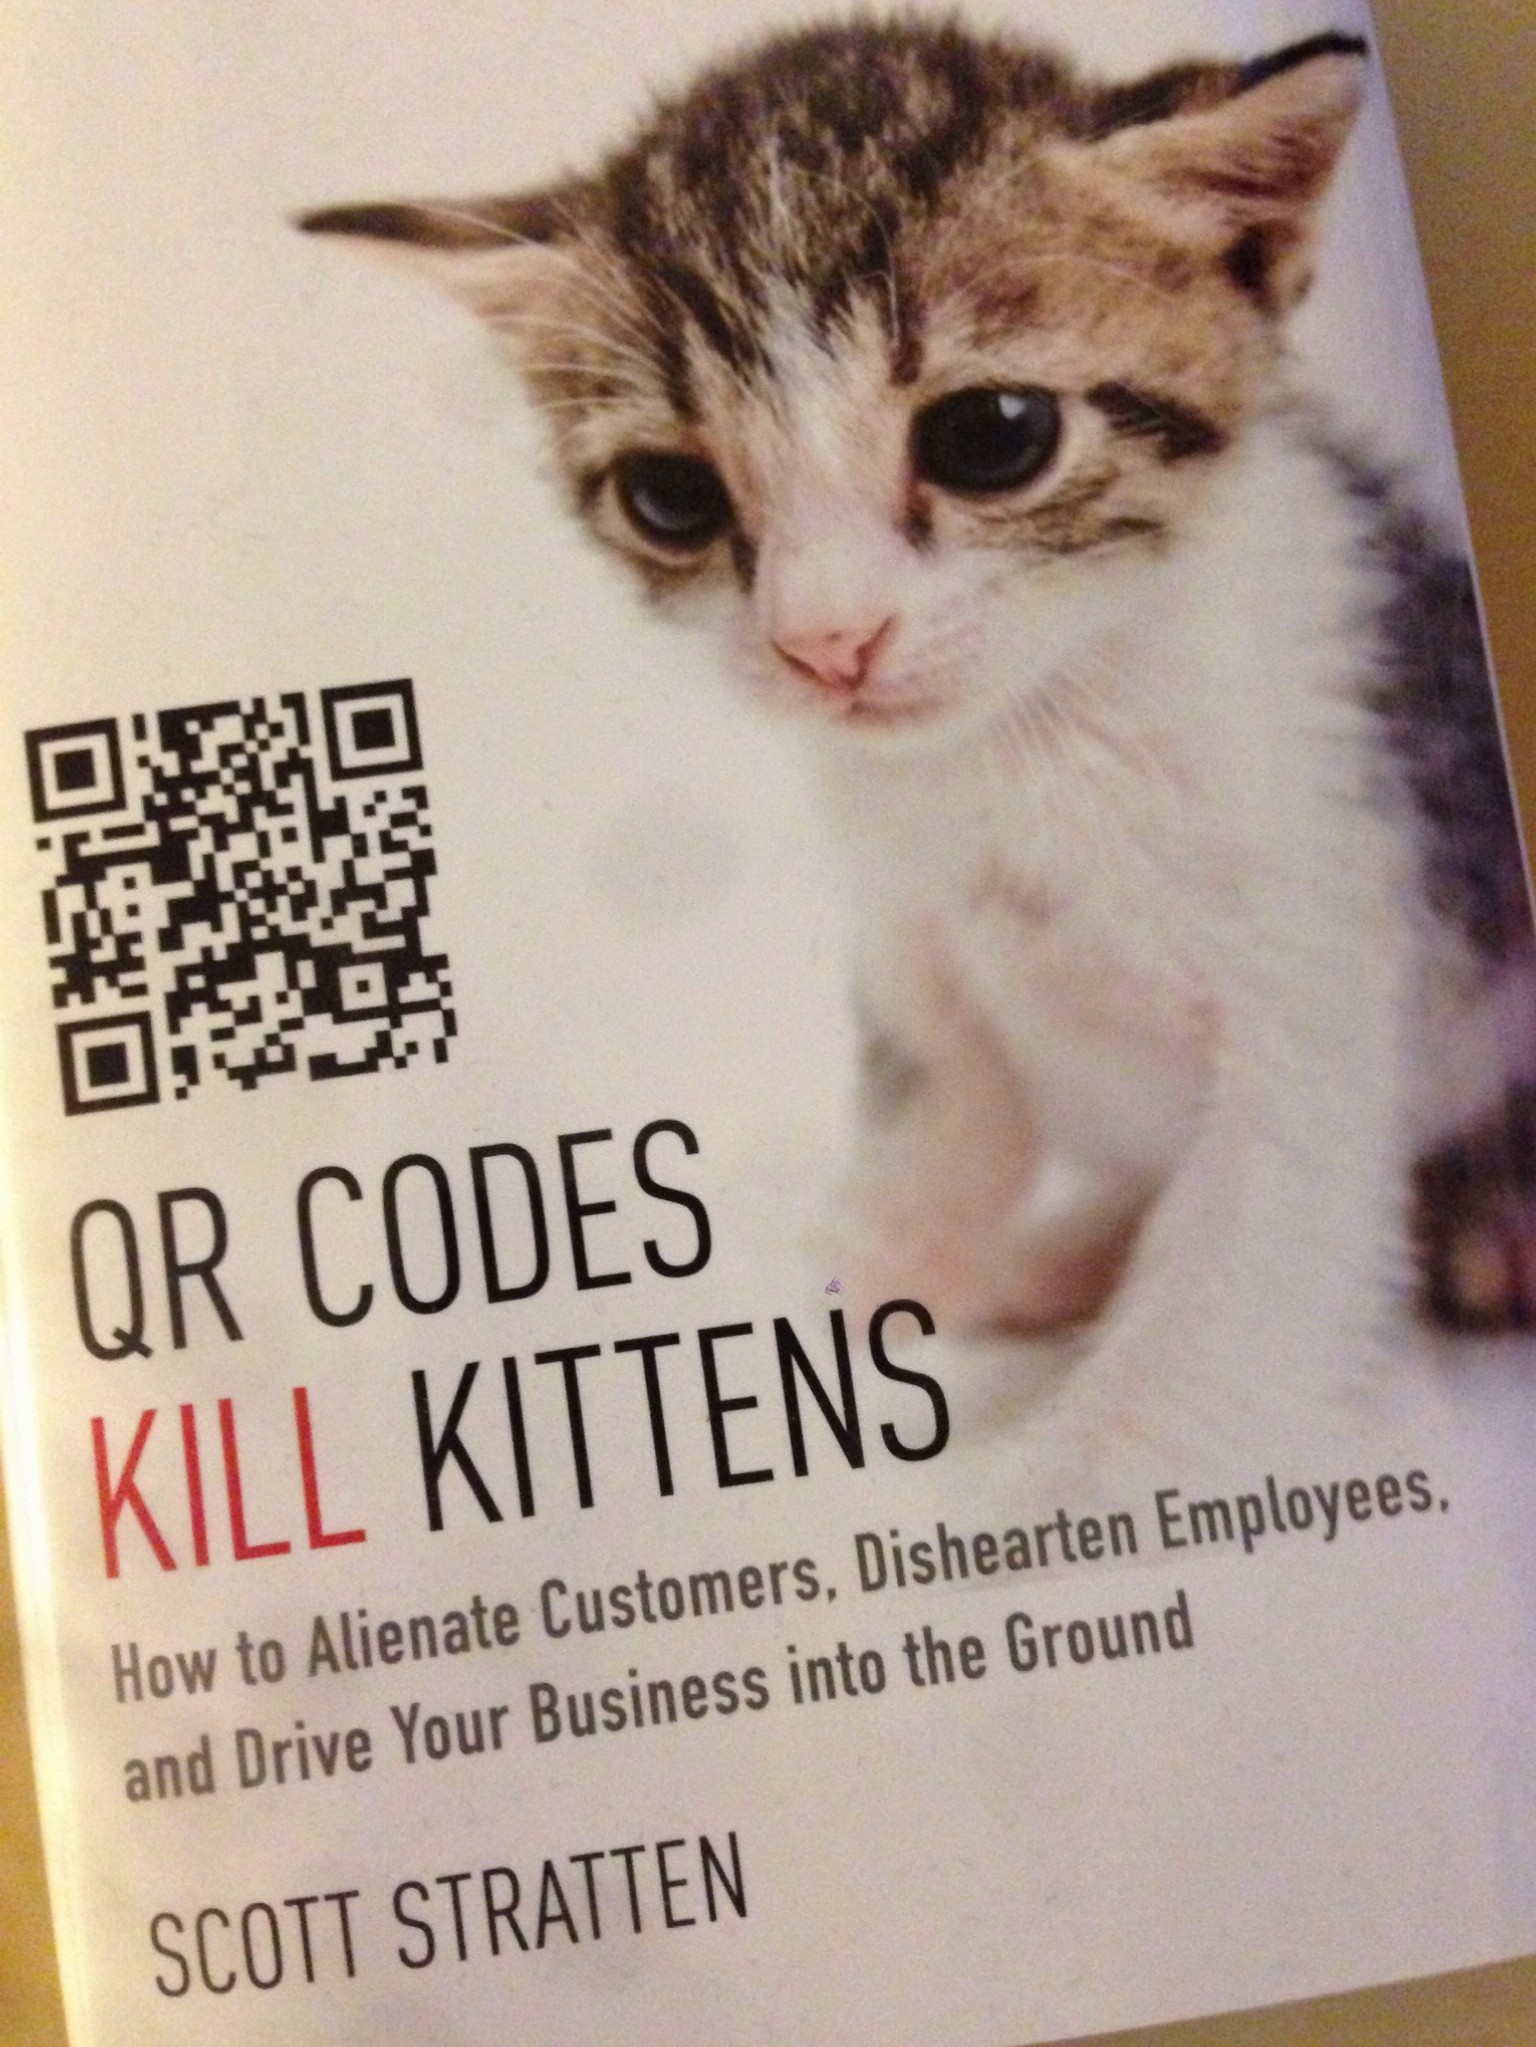 QR Codes Kill Kittens – reingeblättert